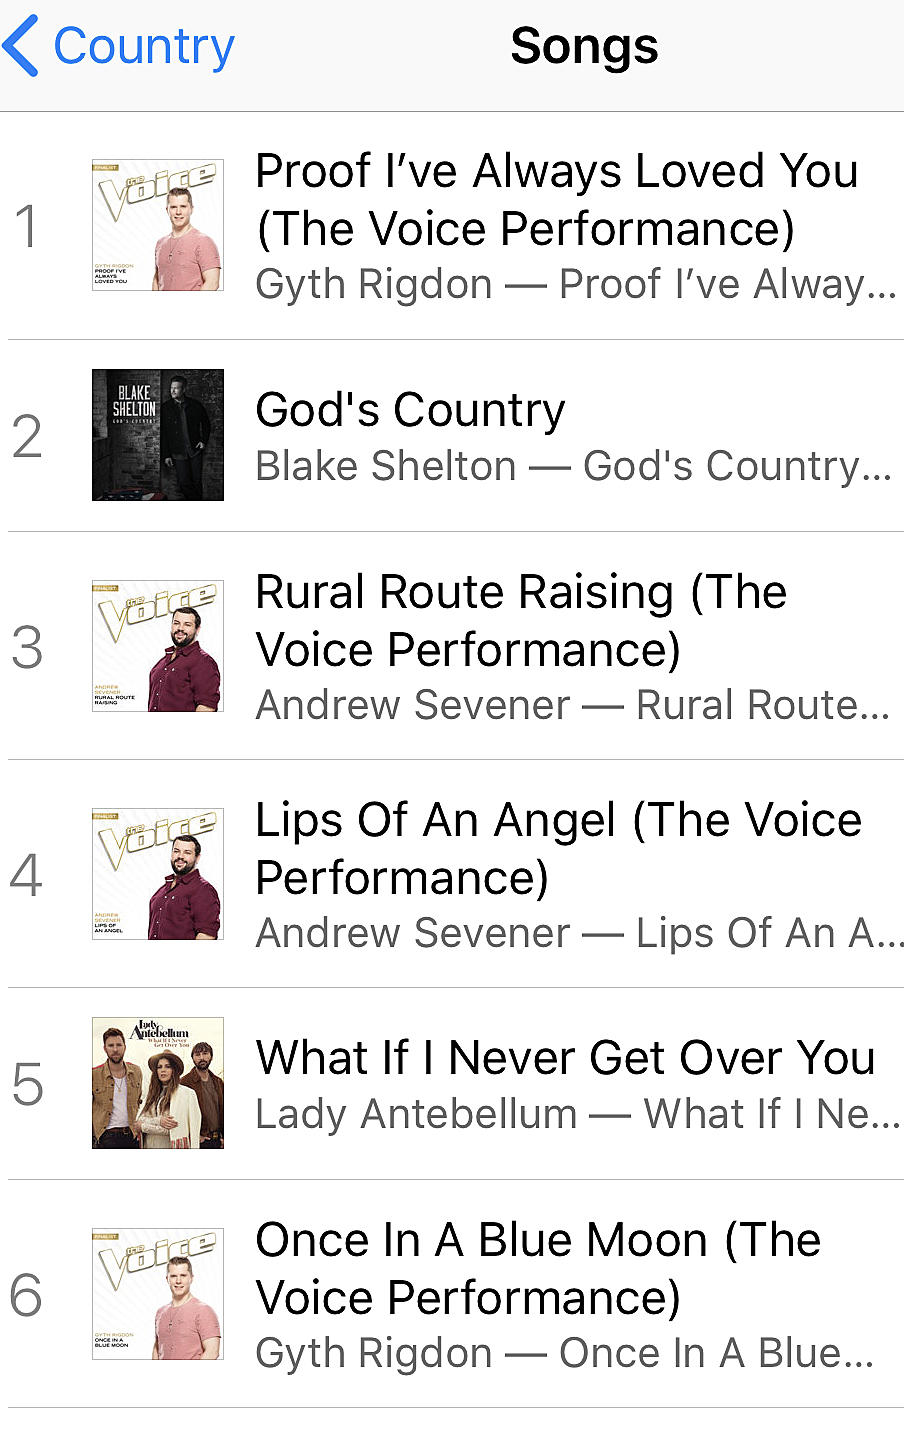 Gyth's Song 'Proof I've Always Loved You' #1 Apple Country